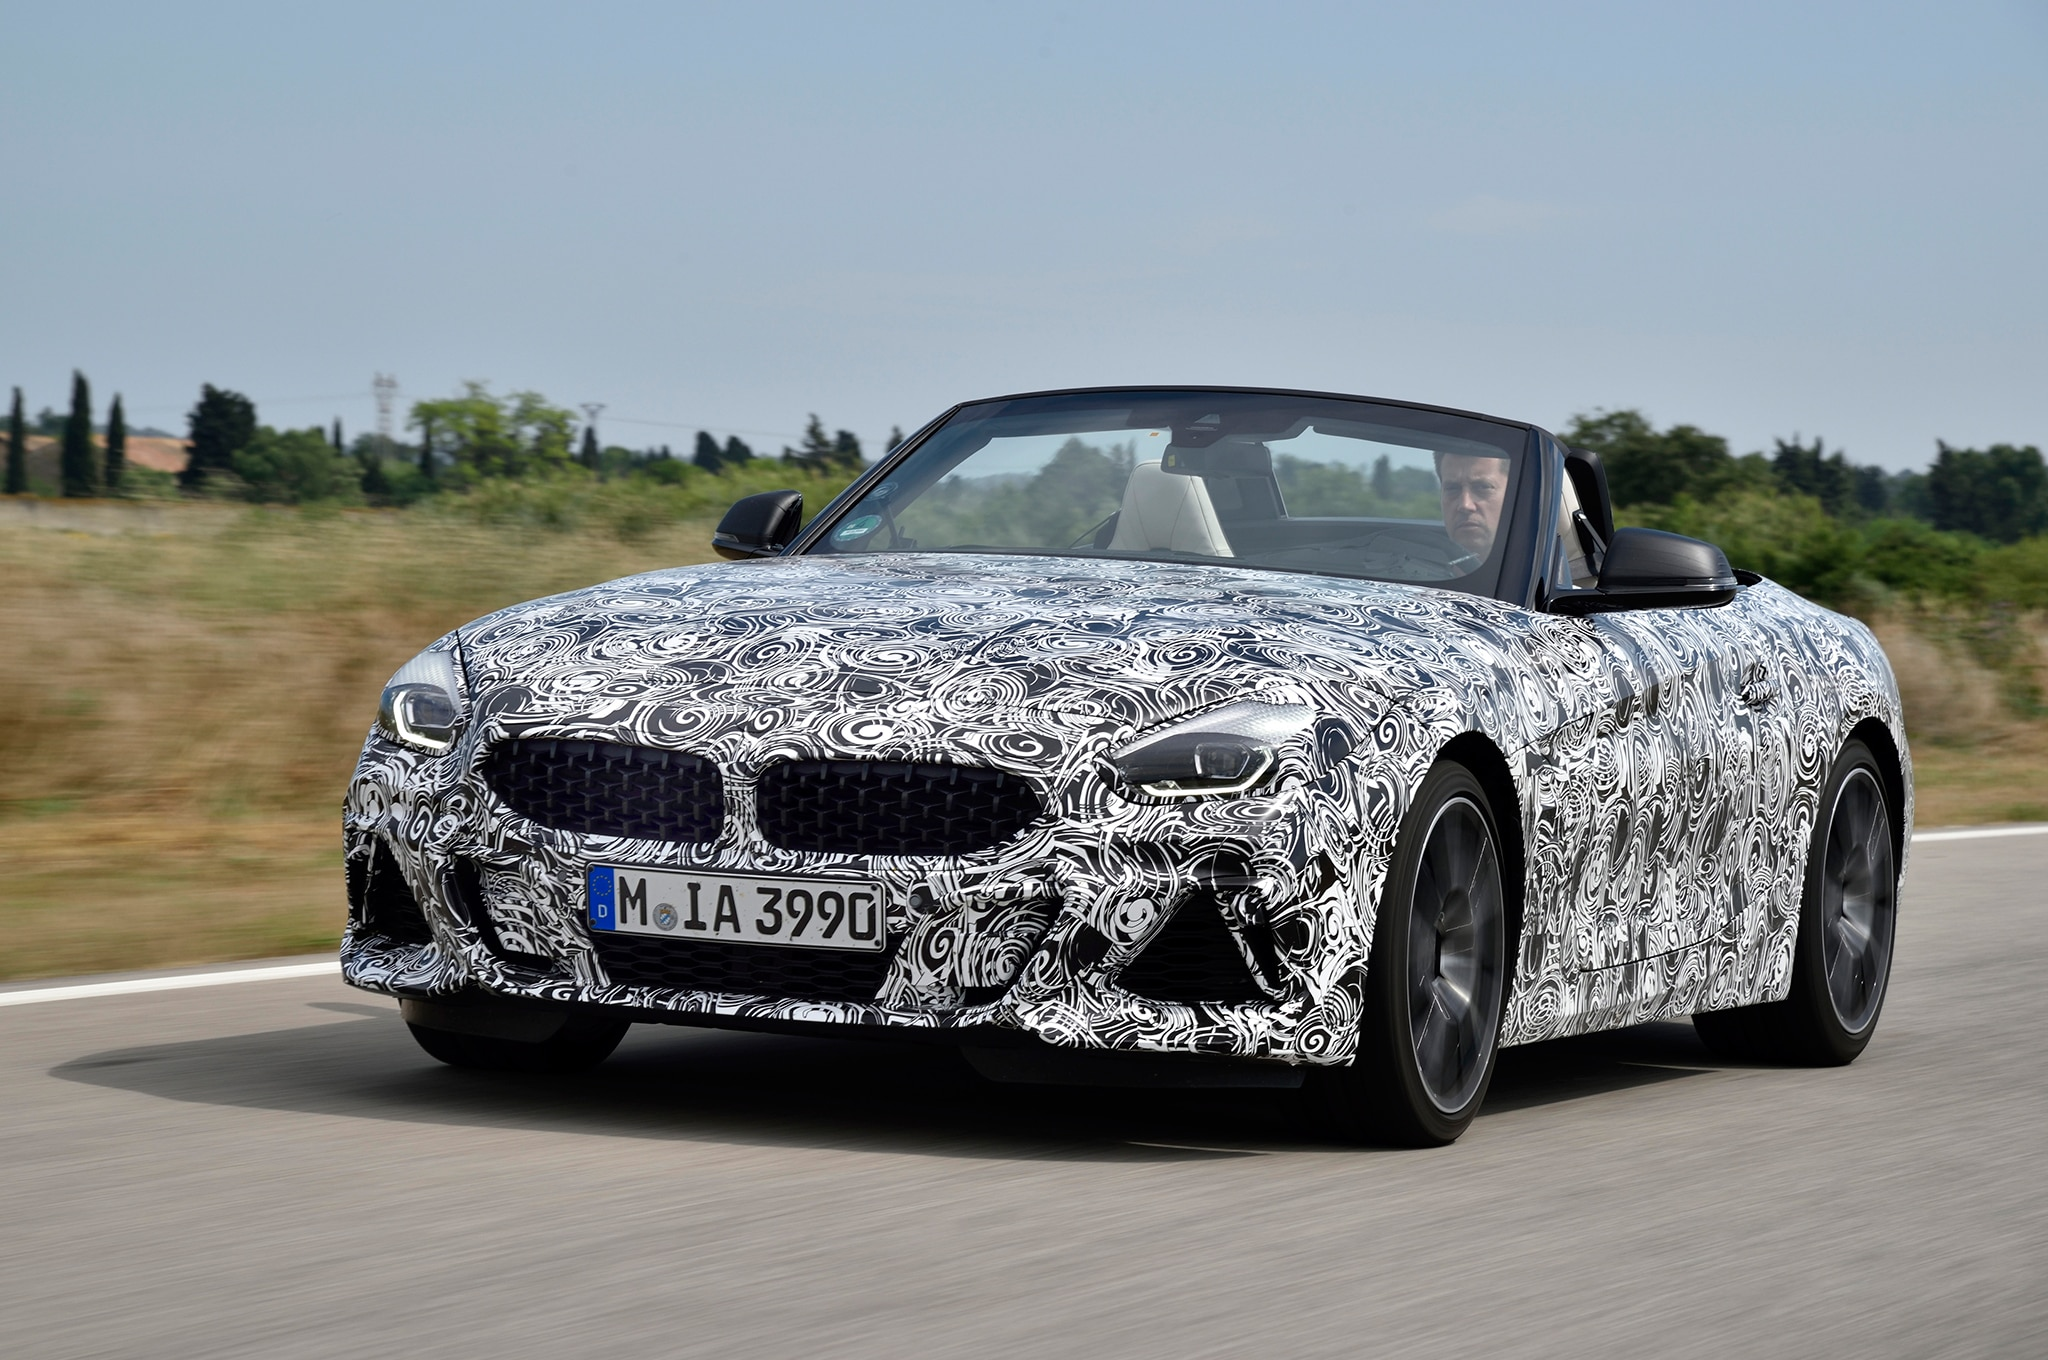 2019 Bmw Z4 M40i Roadster Prototype Drive Review